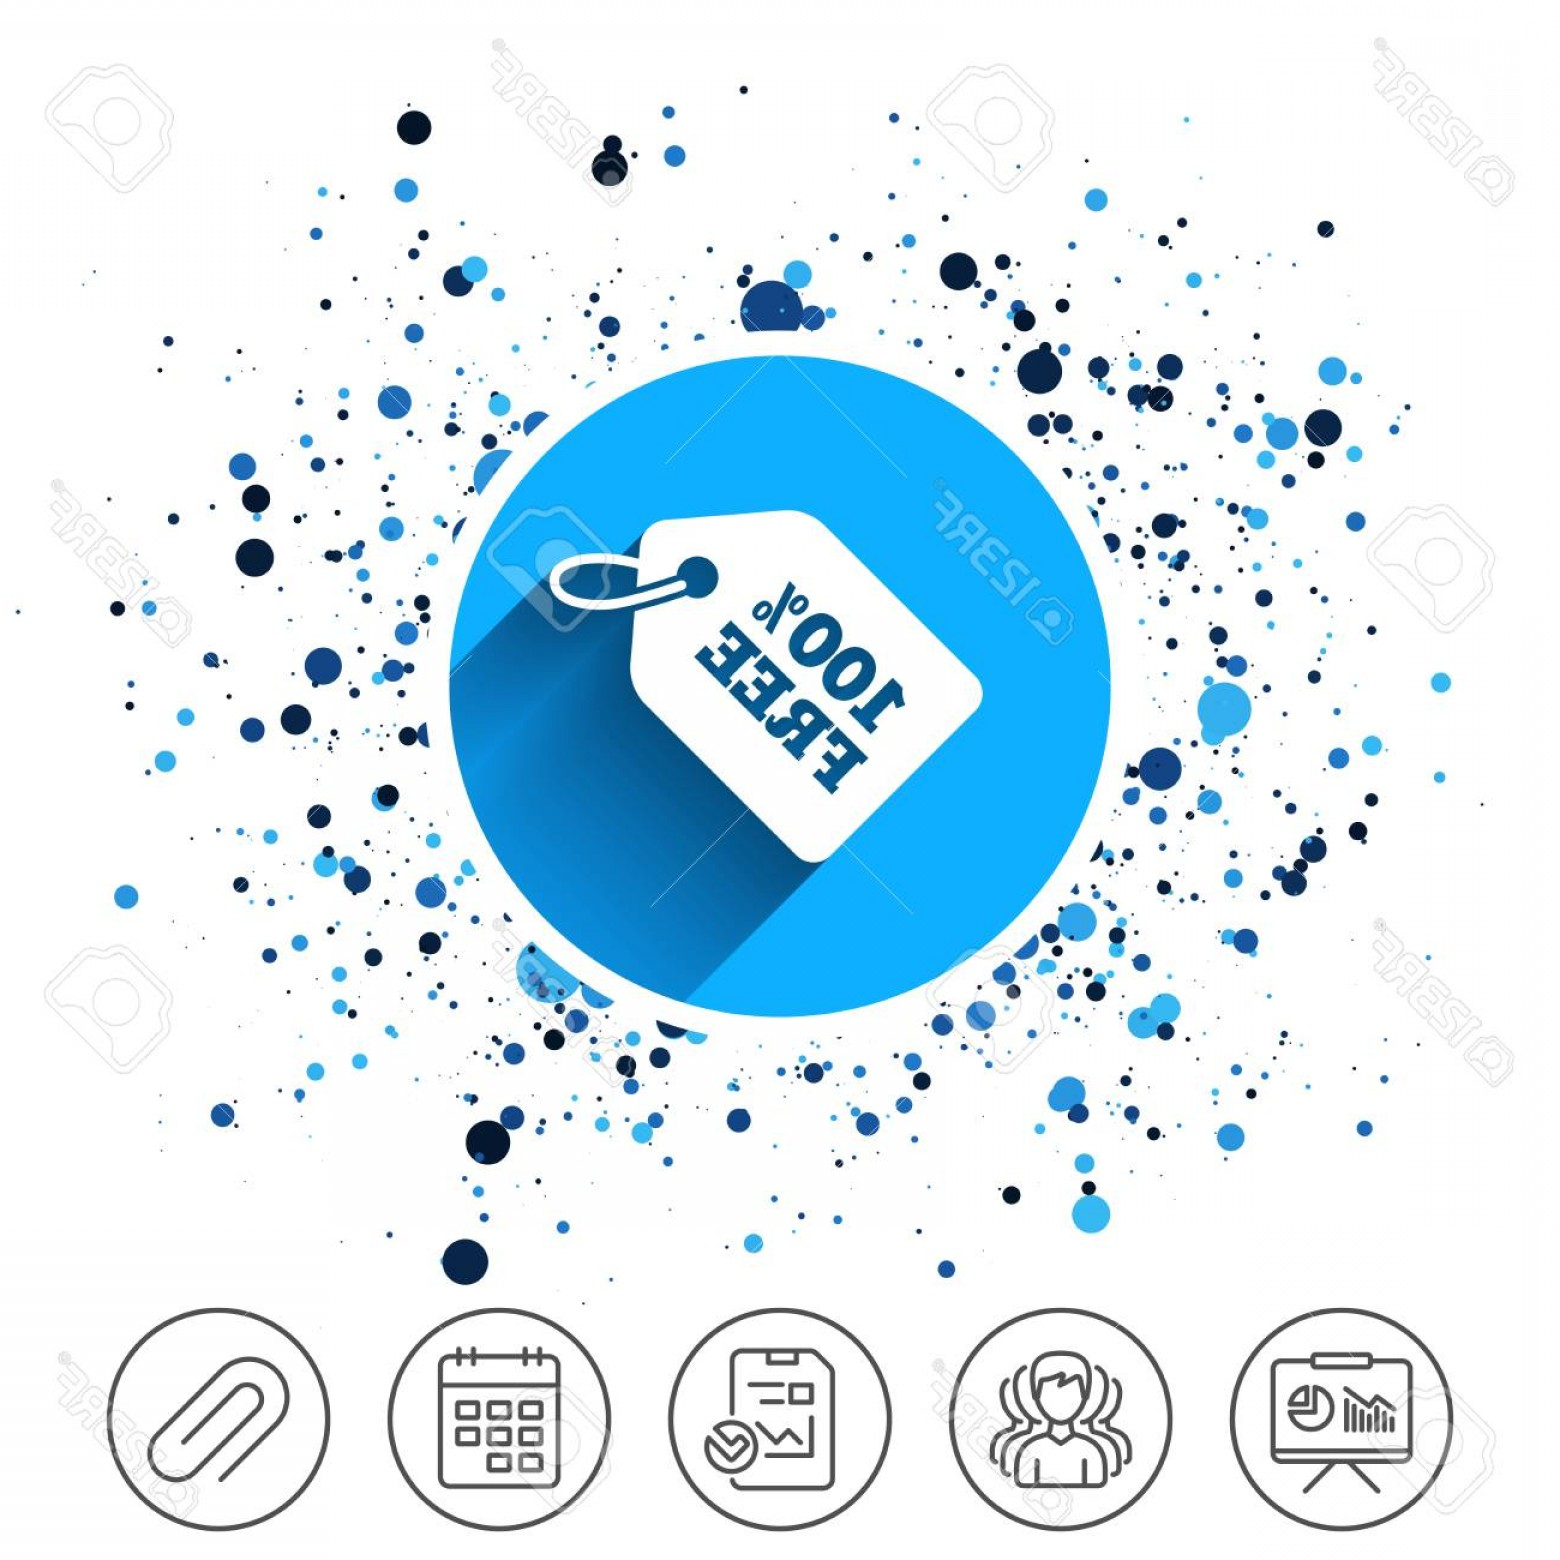 Vector Freebies: Photostock Vector Button On Circles Background Free Tag Icon Freebies Banner Symbol Shopping Special Offer Sign Calend